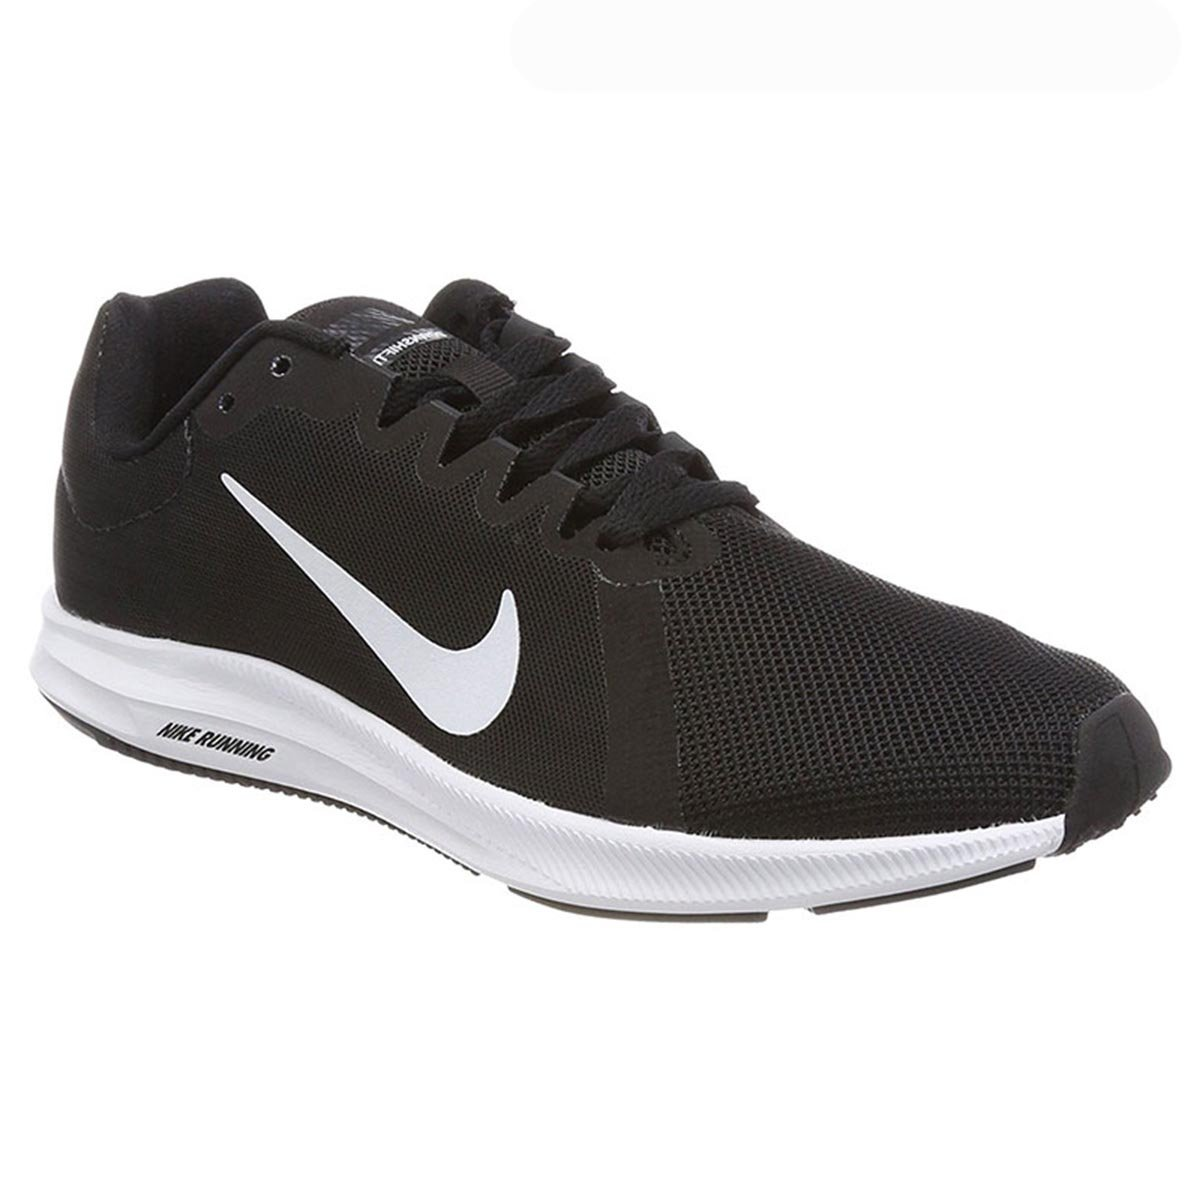 bb583e45c85 Nike Downshifter 8 Womens Running Shoes (Black White) Online at Lowest Price  in India